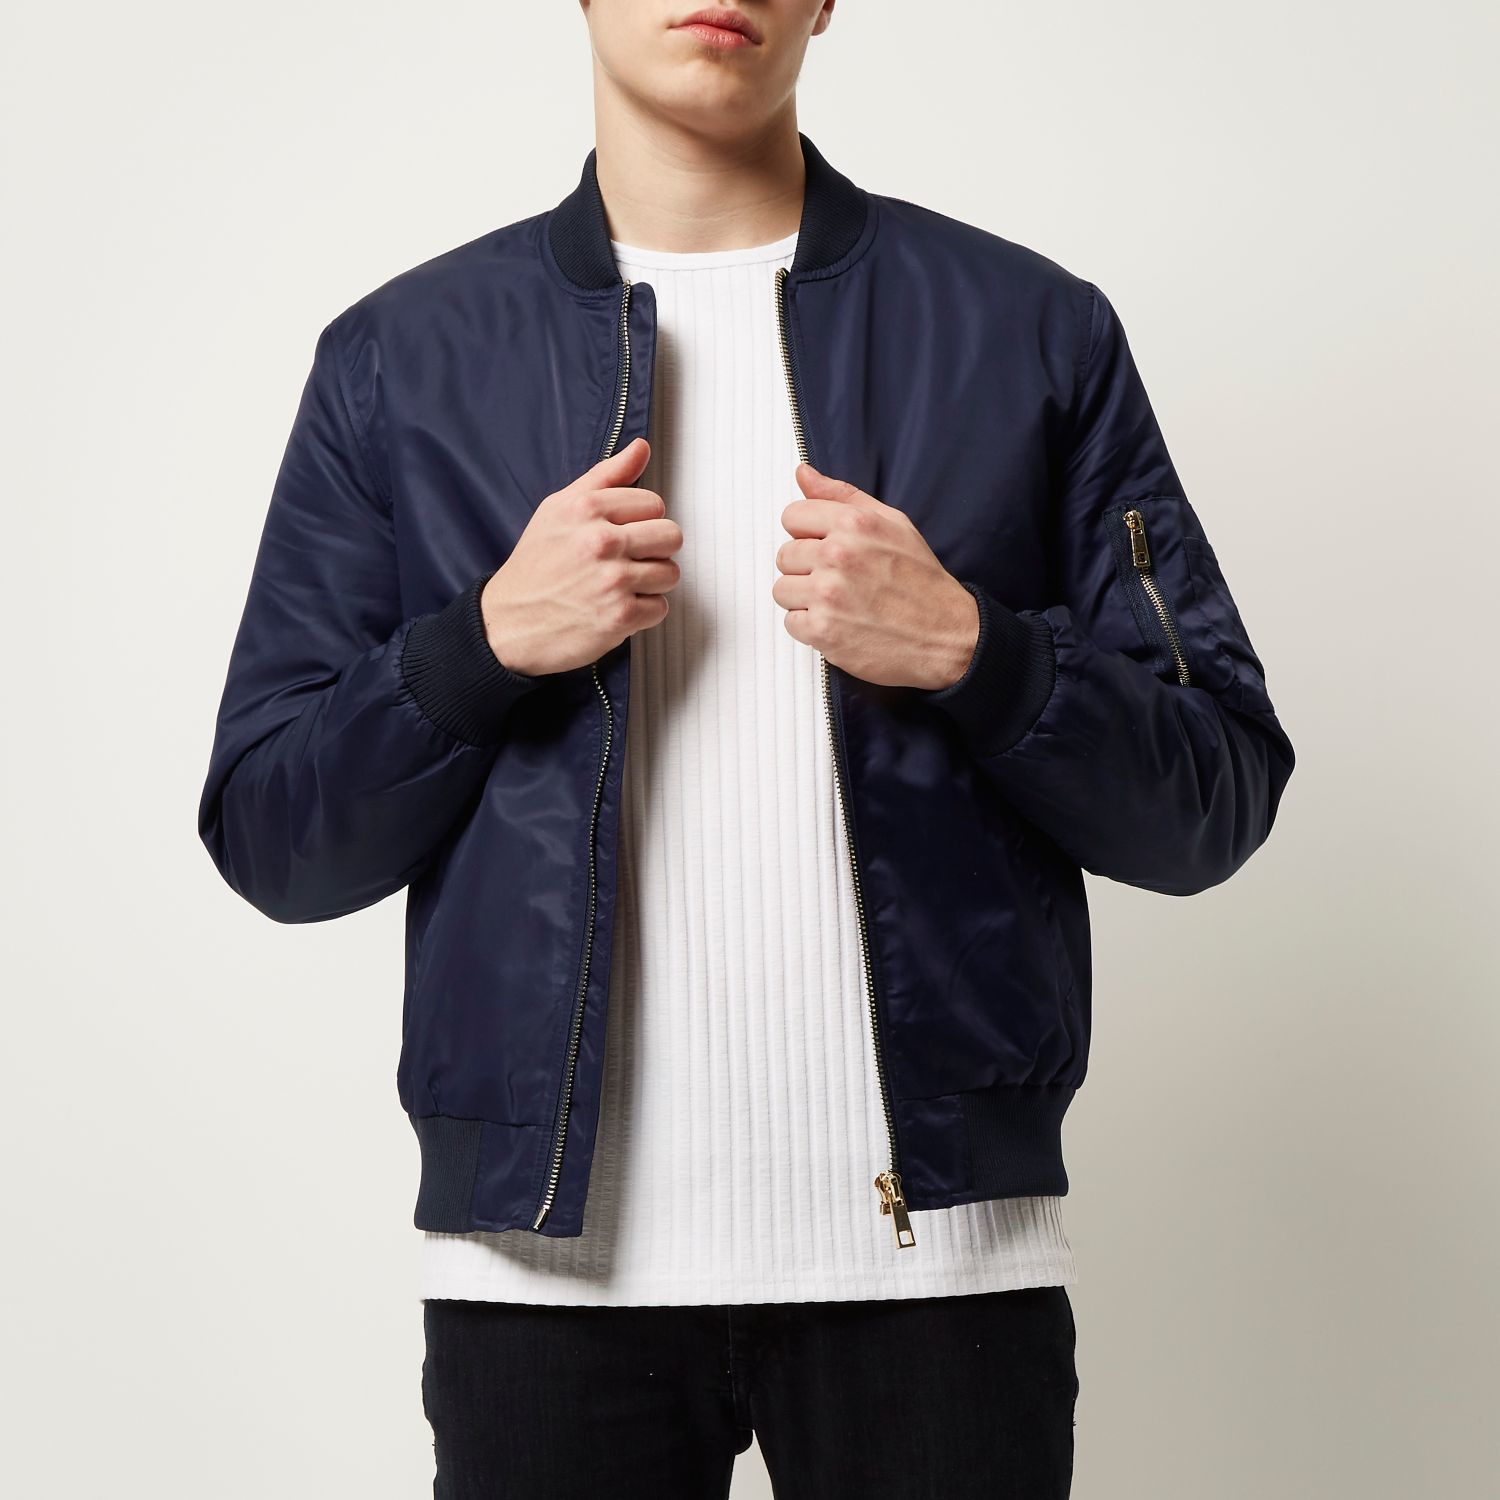 Footaction For Sale Mens Franklin and Marshall Navy lightweight jacket River Island Buy Cheap Find Great Geniue Stockist Online Cheap Usa Stockist a4t3ySpo